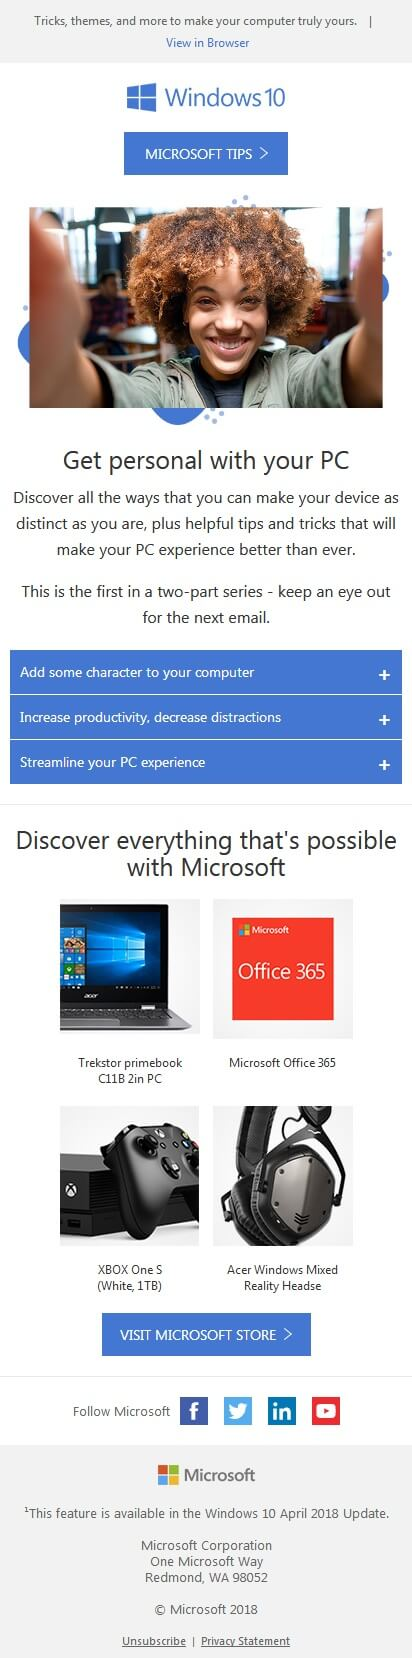 Windows-10-Newsletter-accordion-css